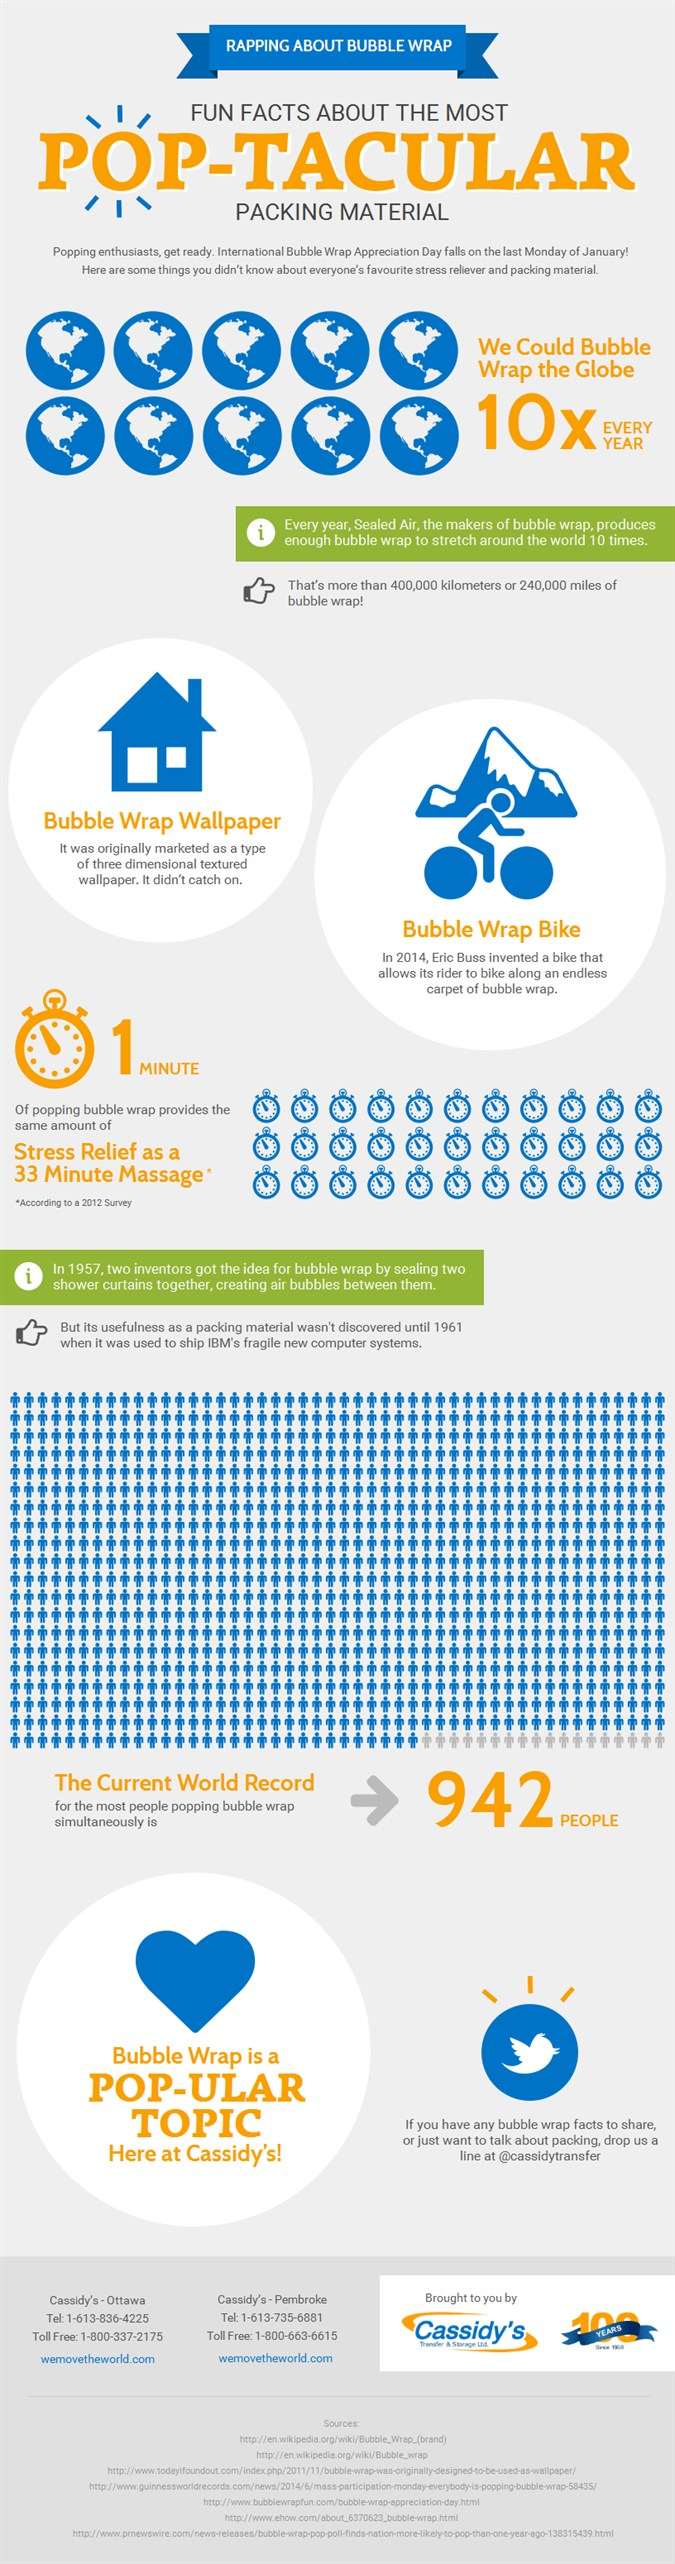 bubble_wrap_facts_infographic_675x2564-1